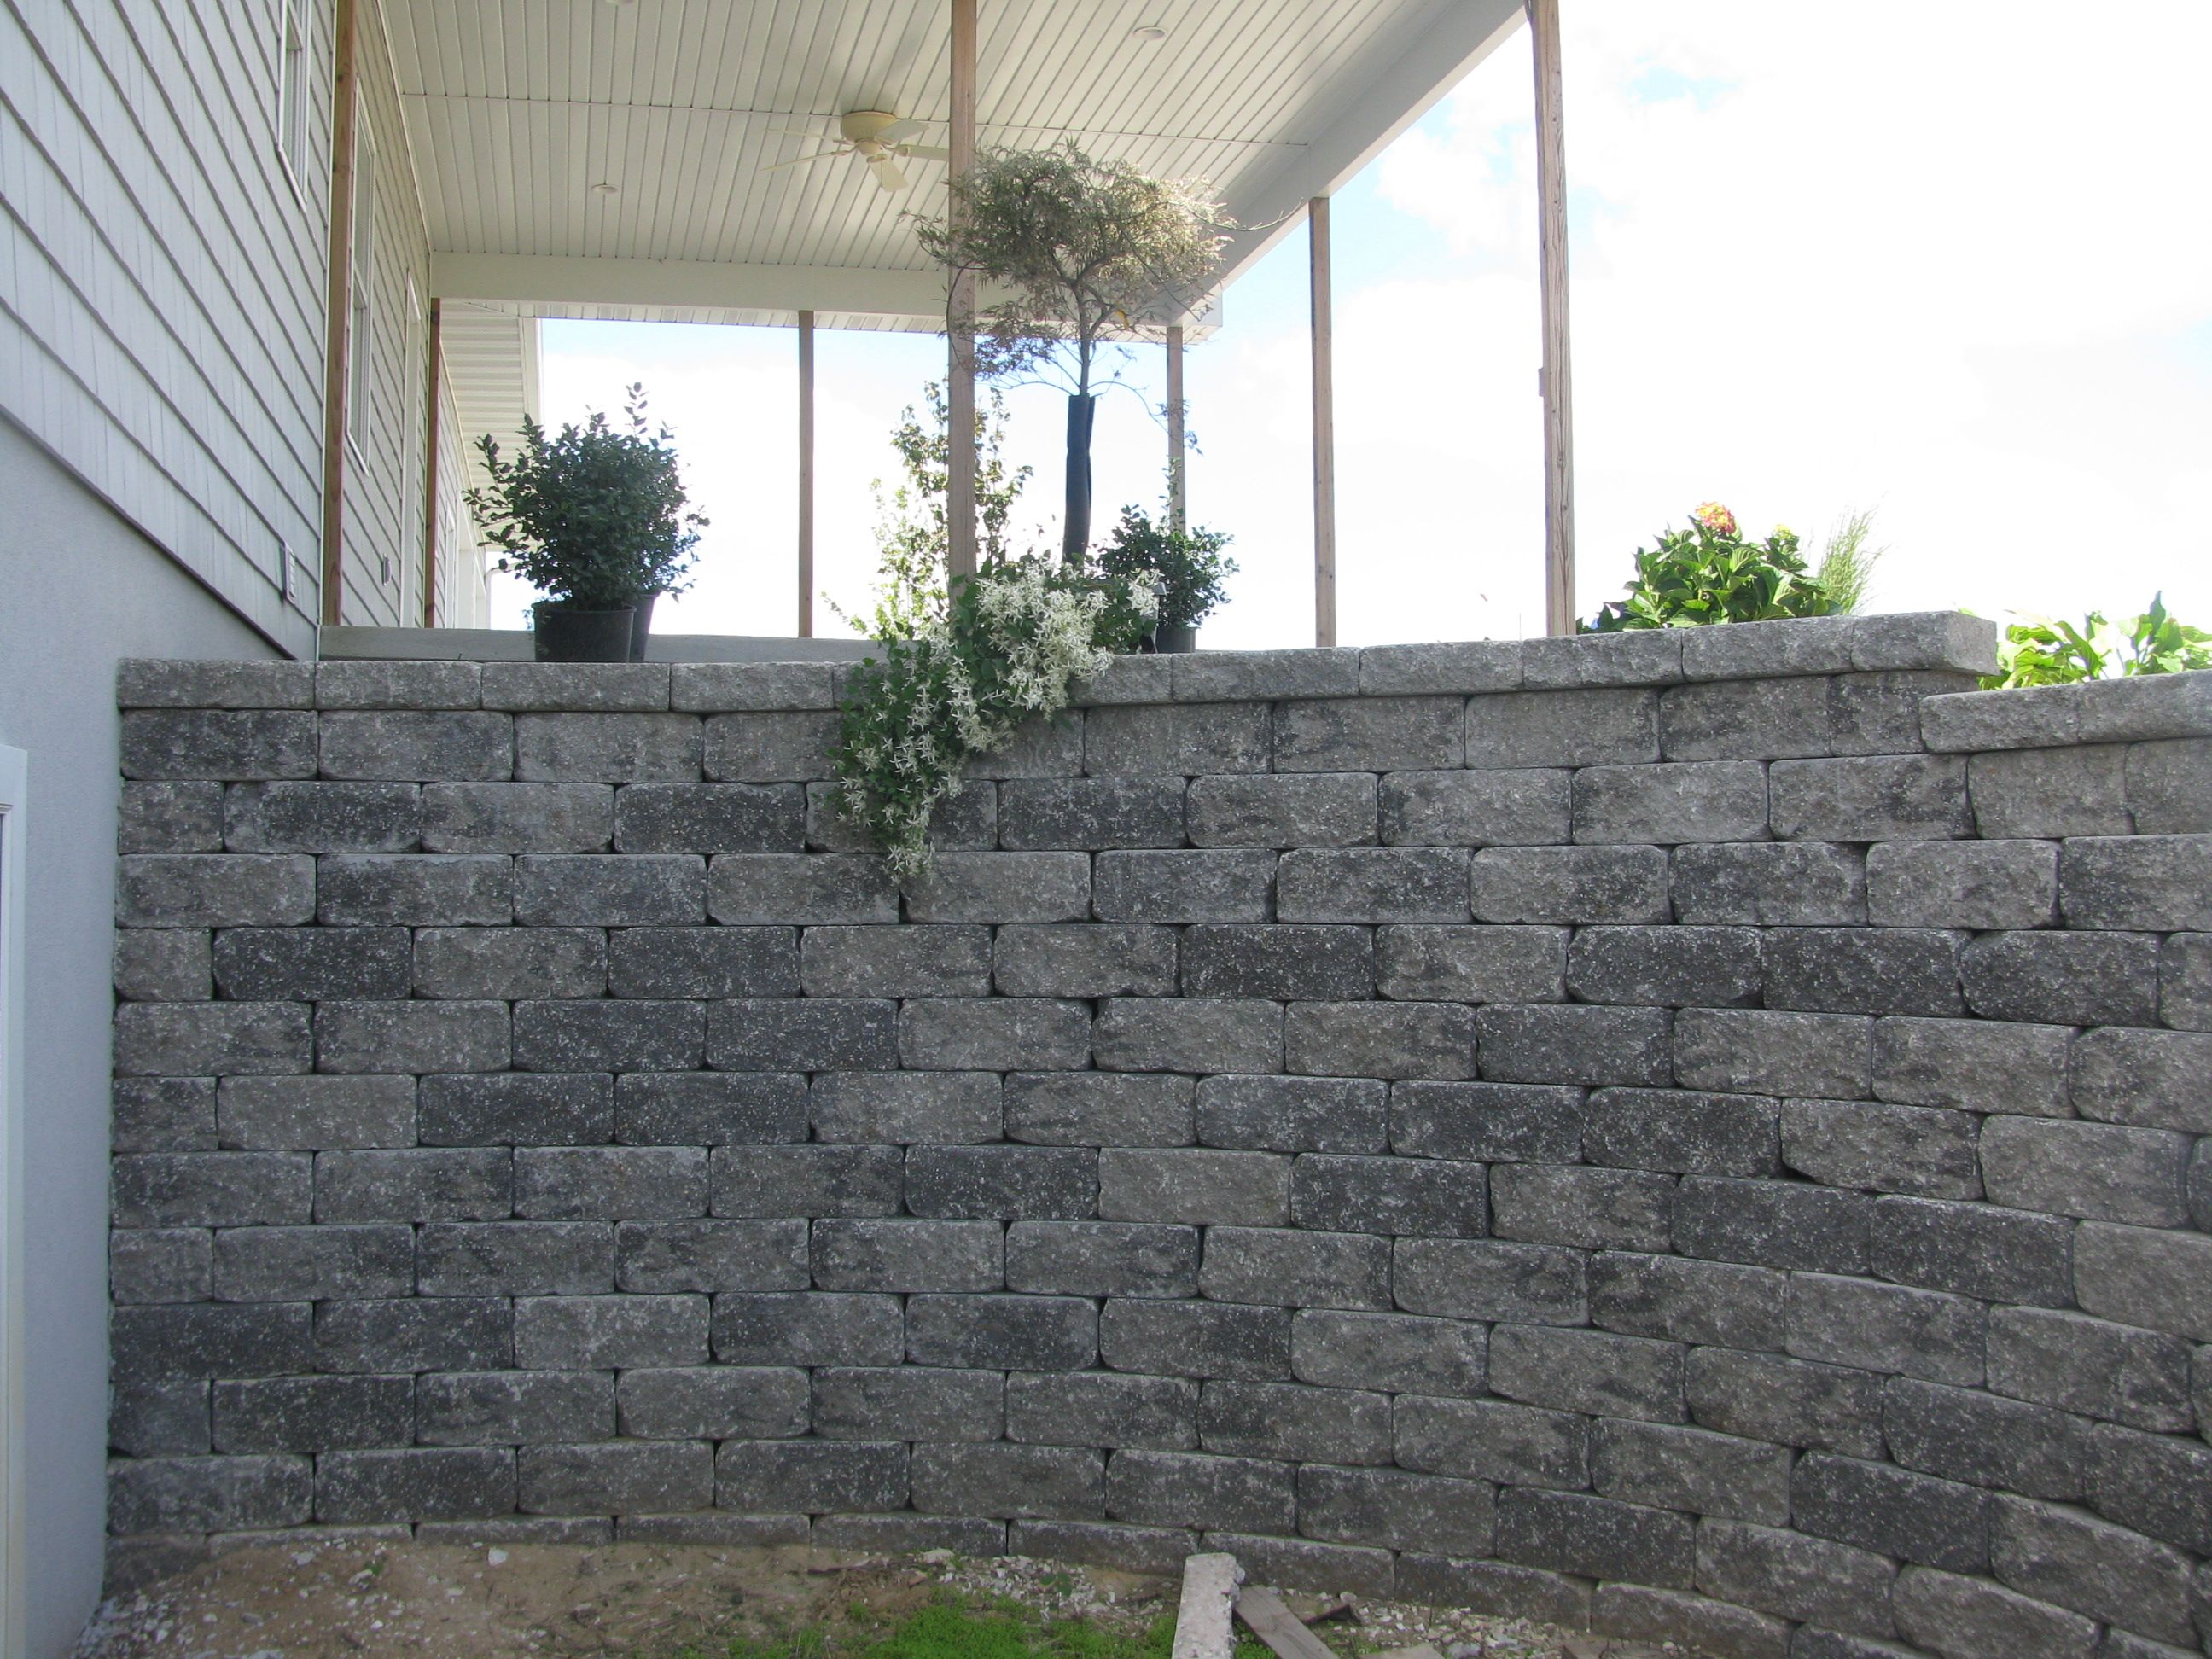 Versa Lock Block Retaining Wall Comes In Different Colors Retaining Wall Outdoor Spaces Building Design